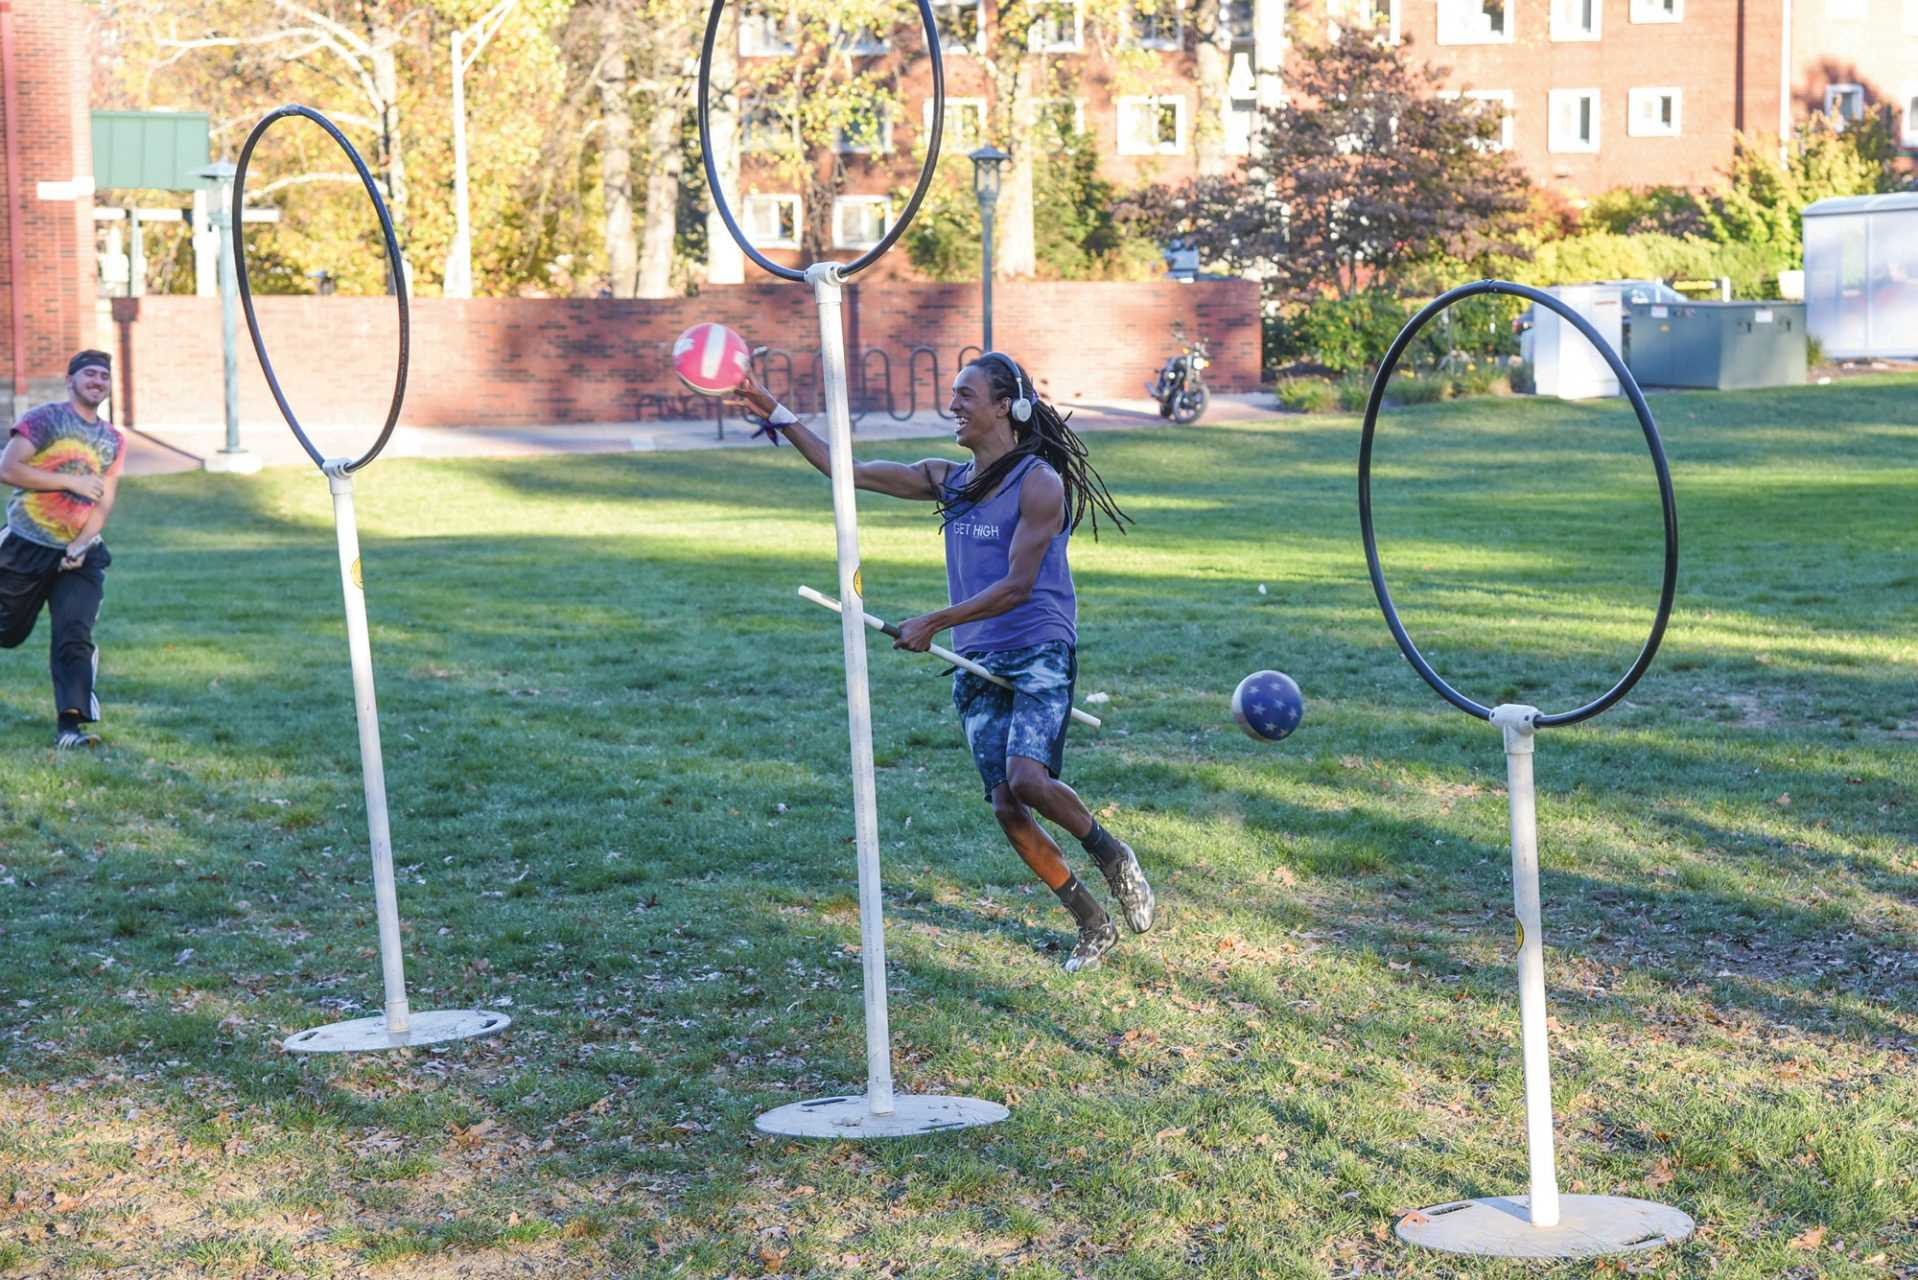 Brandon Poole throws the quaffle through one of the hoops to score during practice last October. The Appalachian Apparators practice every Tuesday and Thursday on Duck Pond Field.